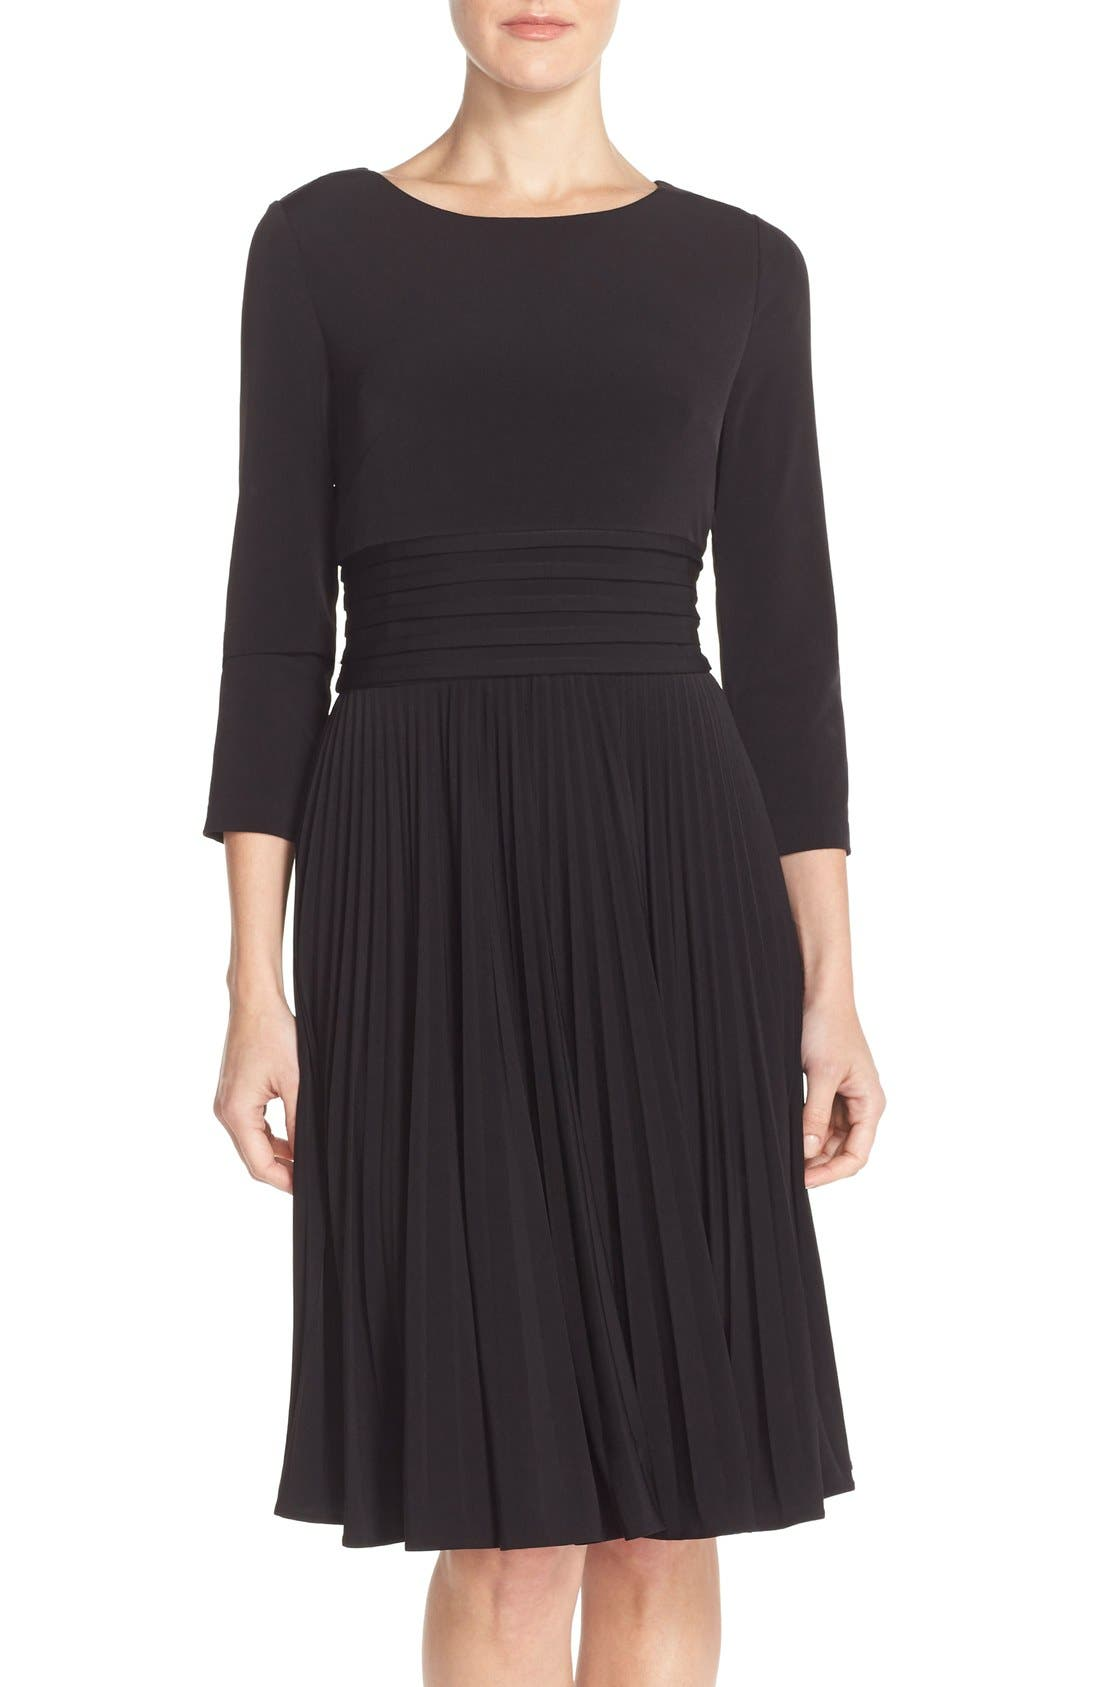 ELIZA J, Pleated Jersey Fit & Flare Dress, Main thumbnail 1, color, 001